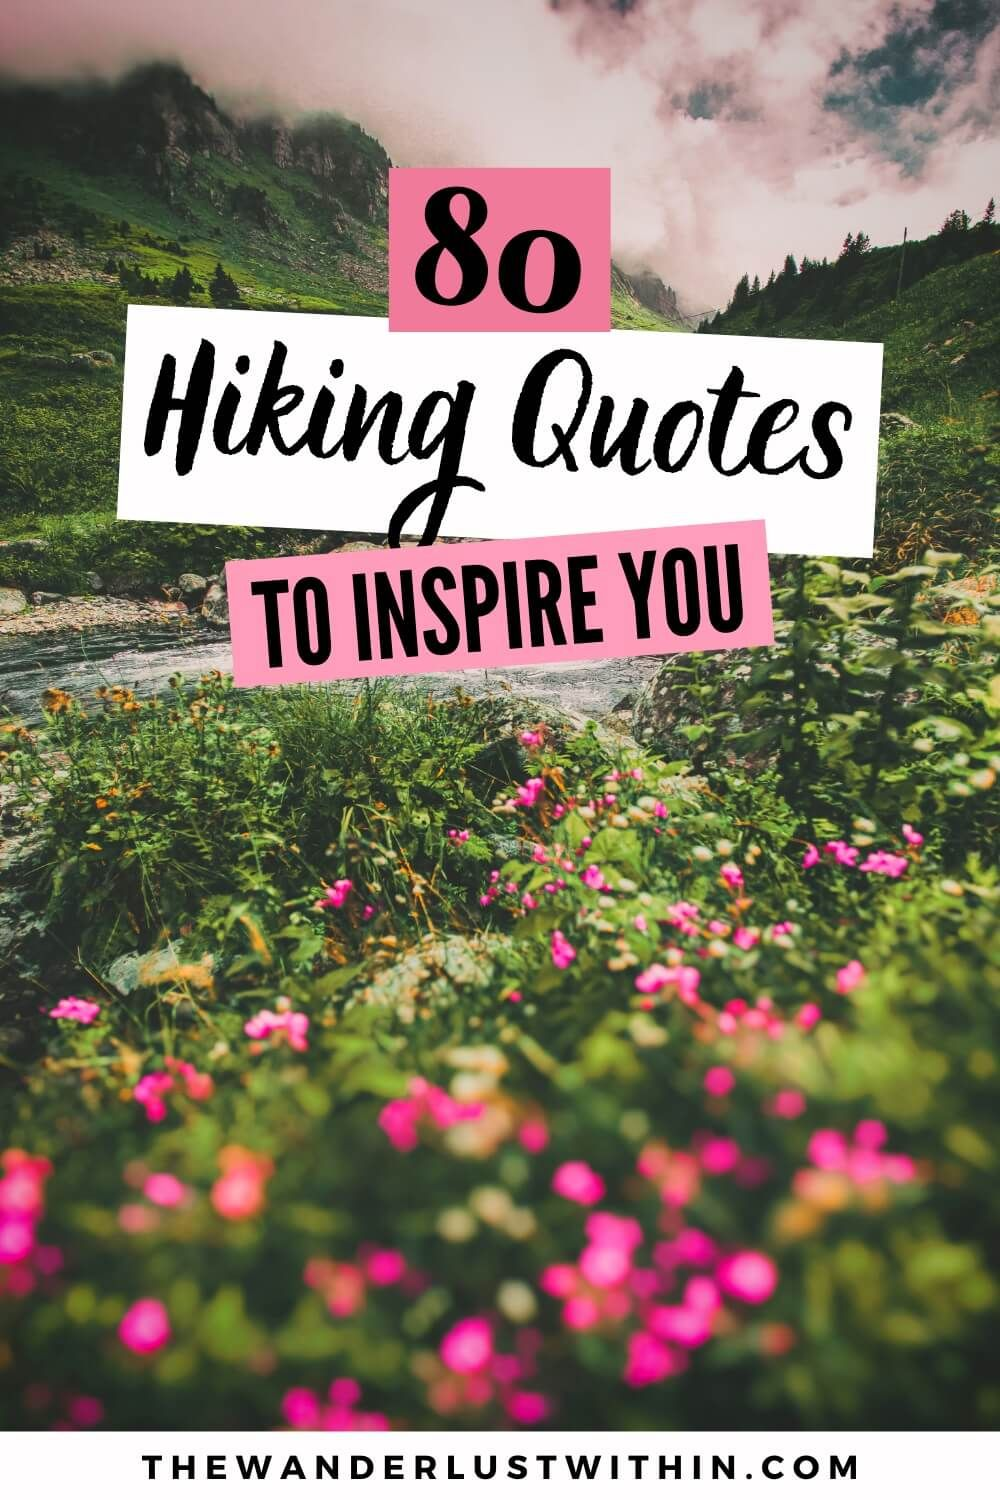 80 Inspiring Hiking Quotes For Adventure Lovers In 2020 The Wanderlust Within In 2020 Hiking Quotes Hiking Quotes Funny Hiking Quotes Adventure